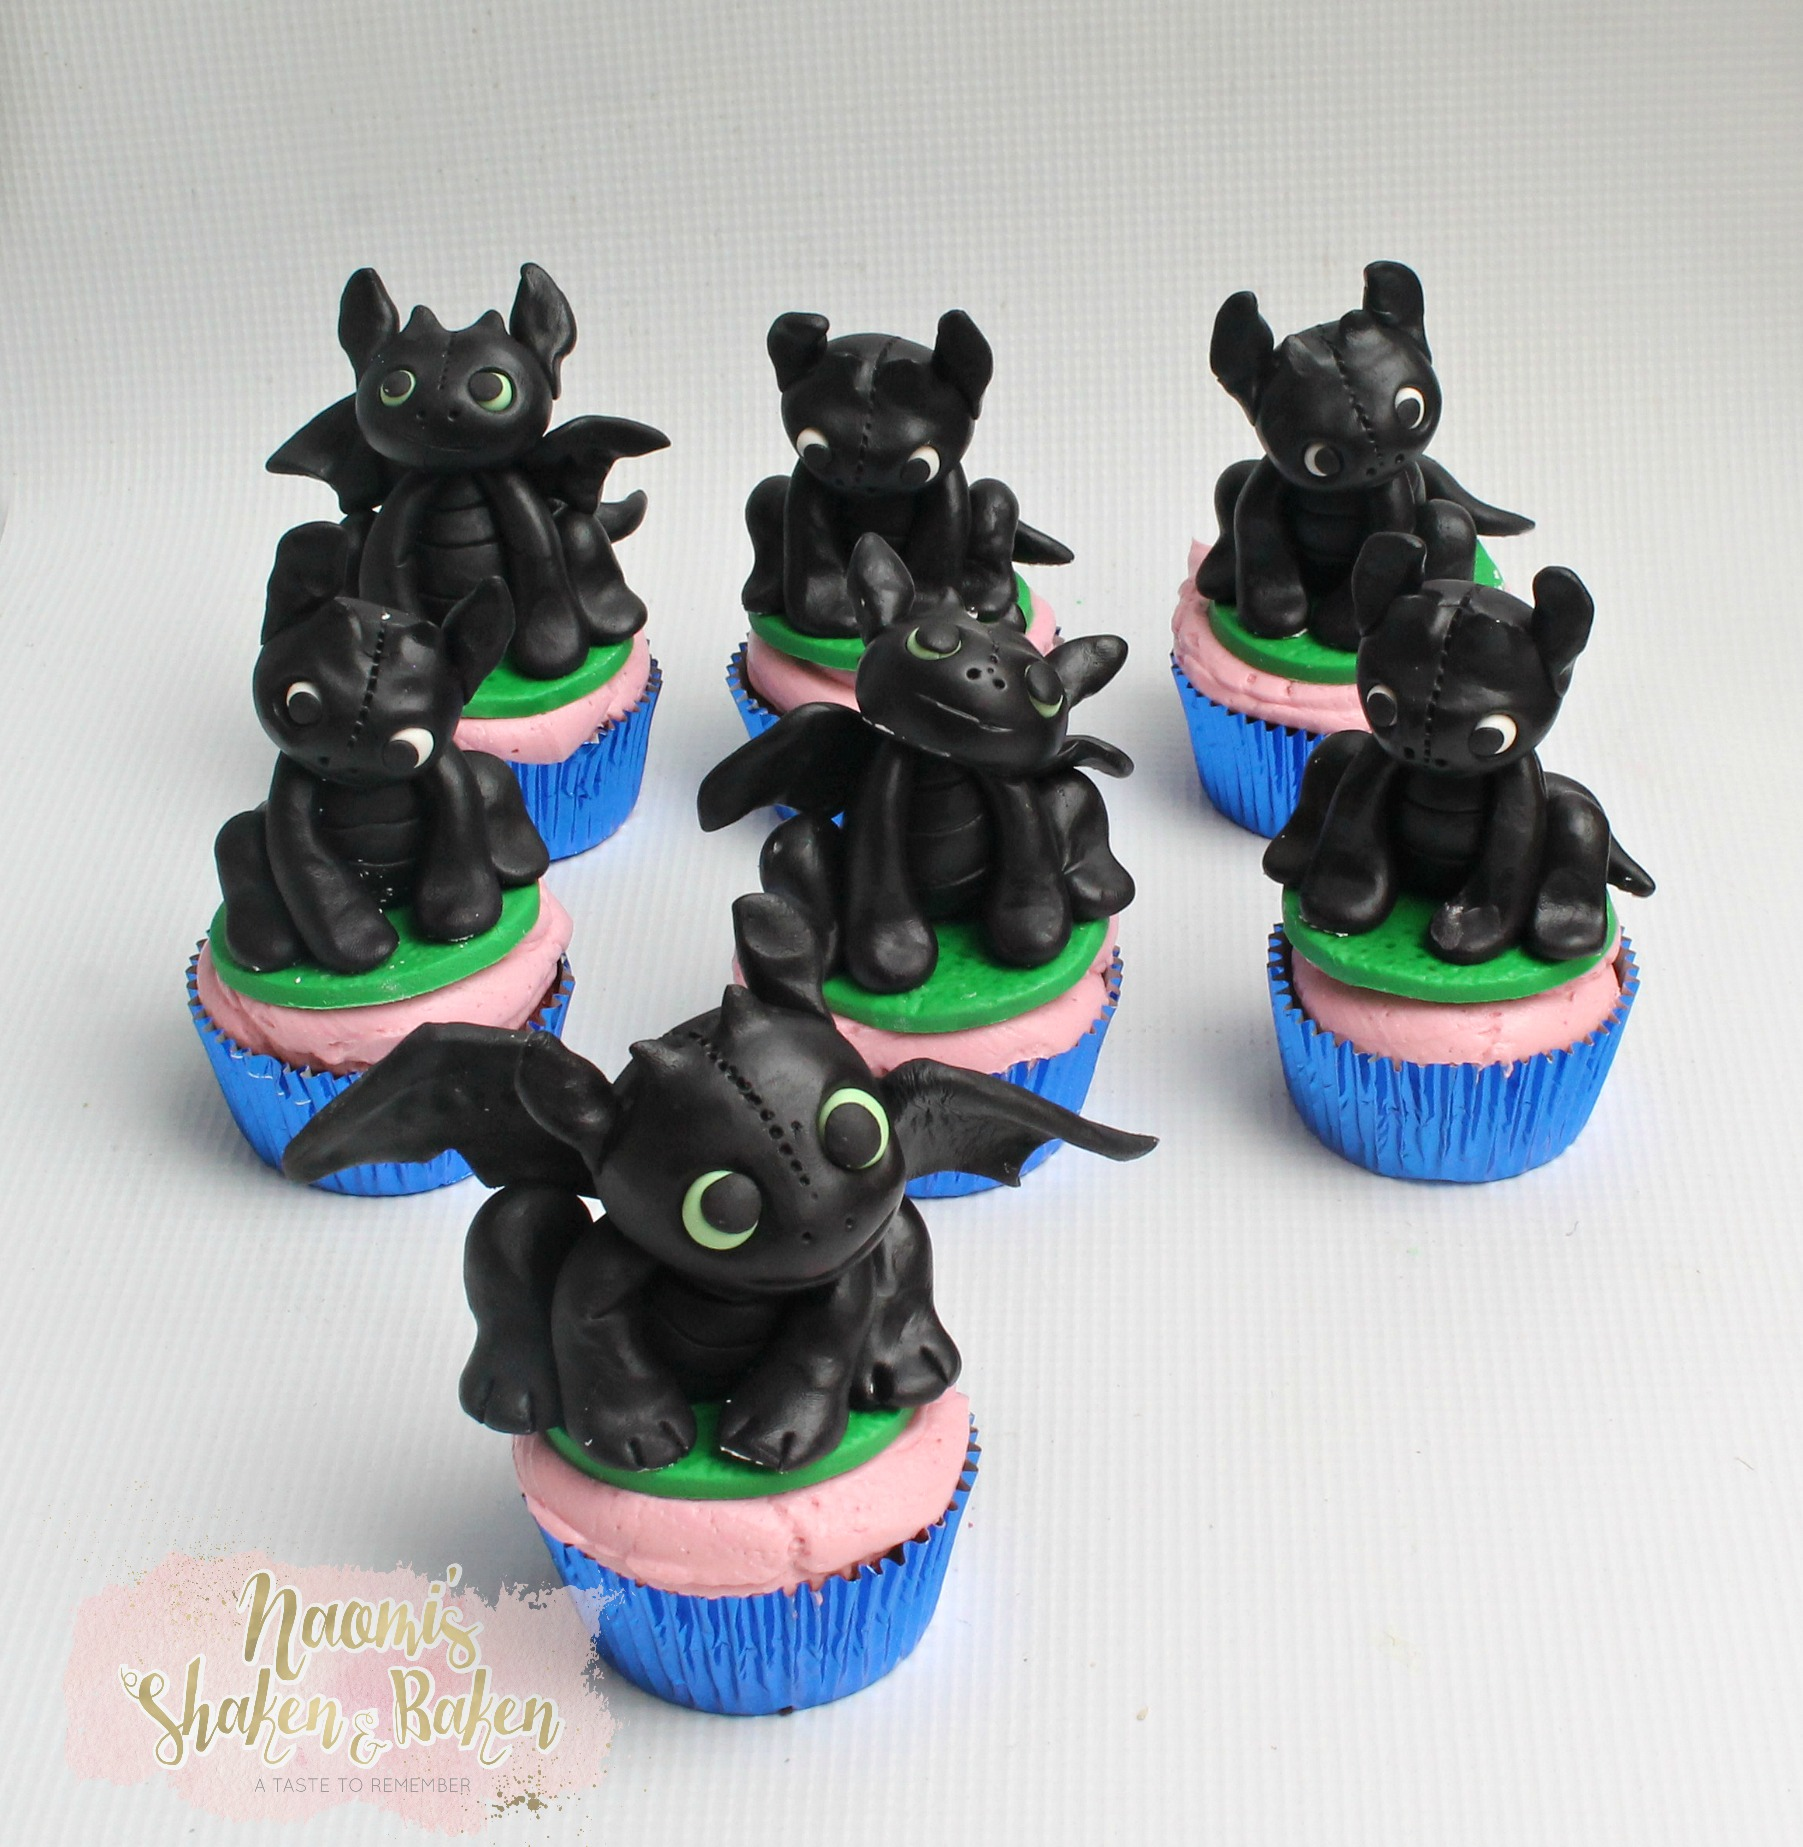 Toothless dragon cupcakes